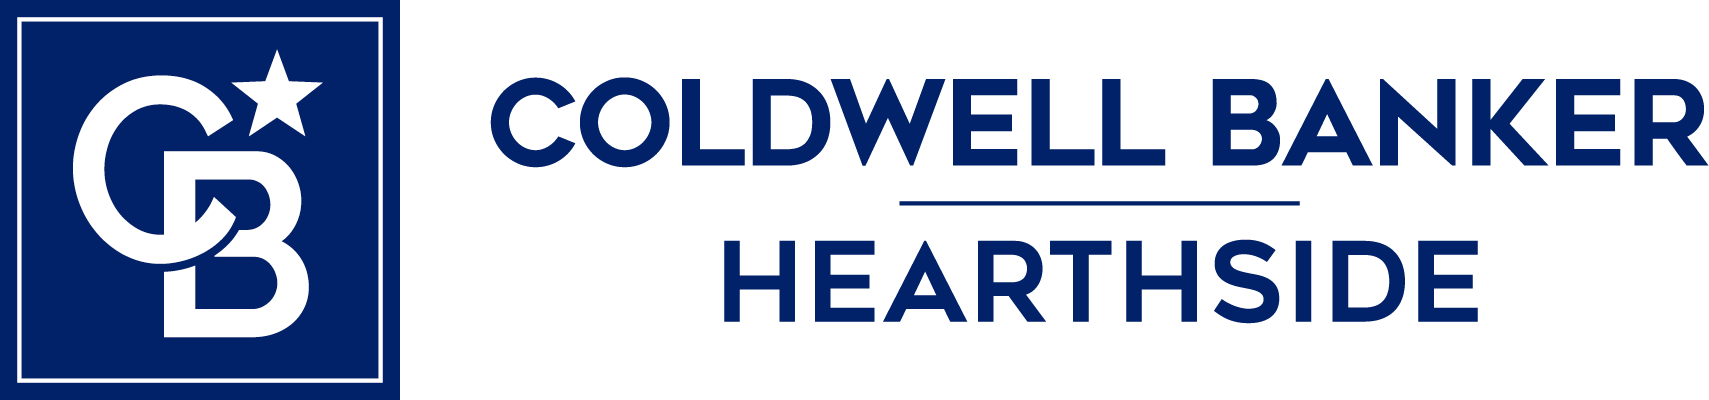 Madeline Jones - Coldwell Banker Hearthside